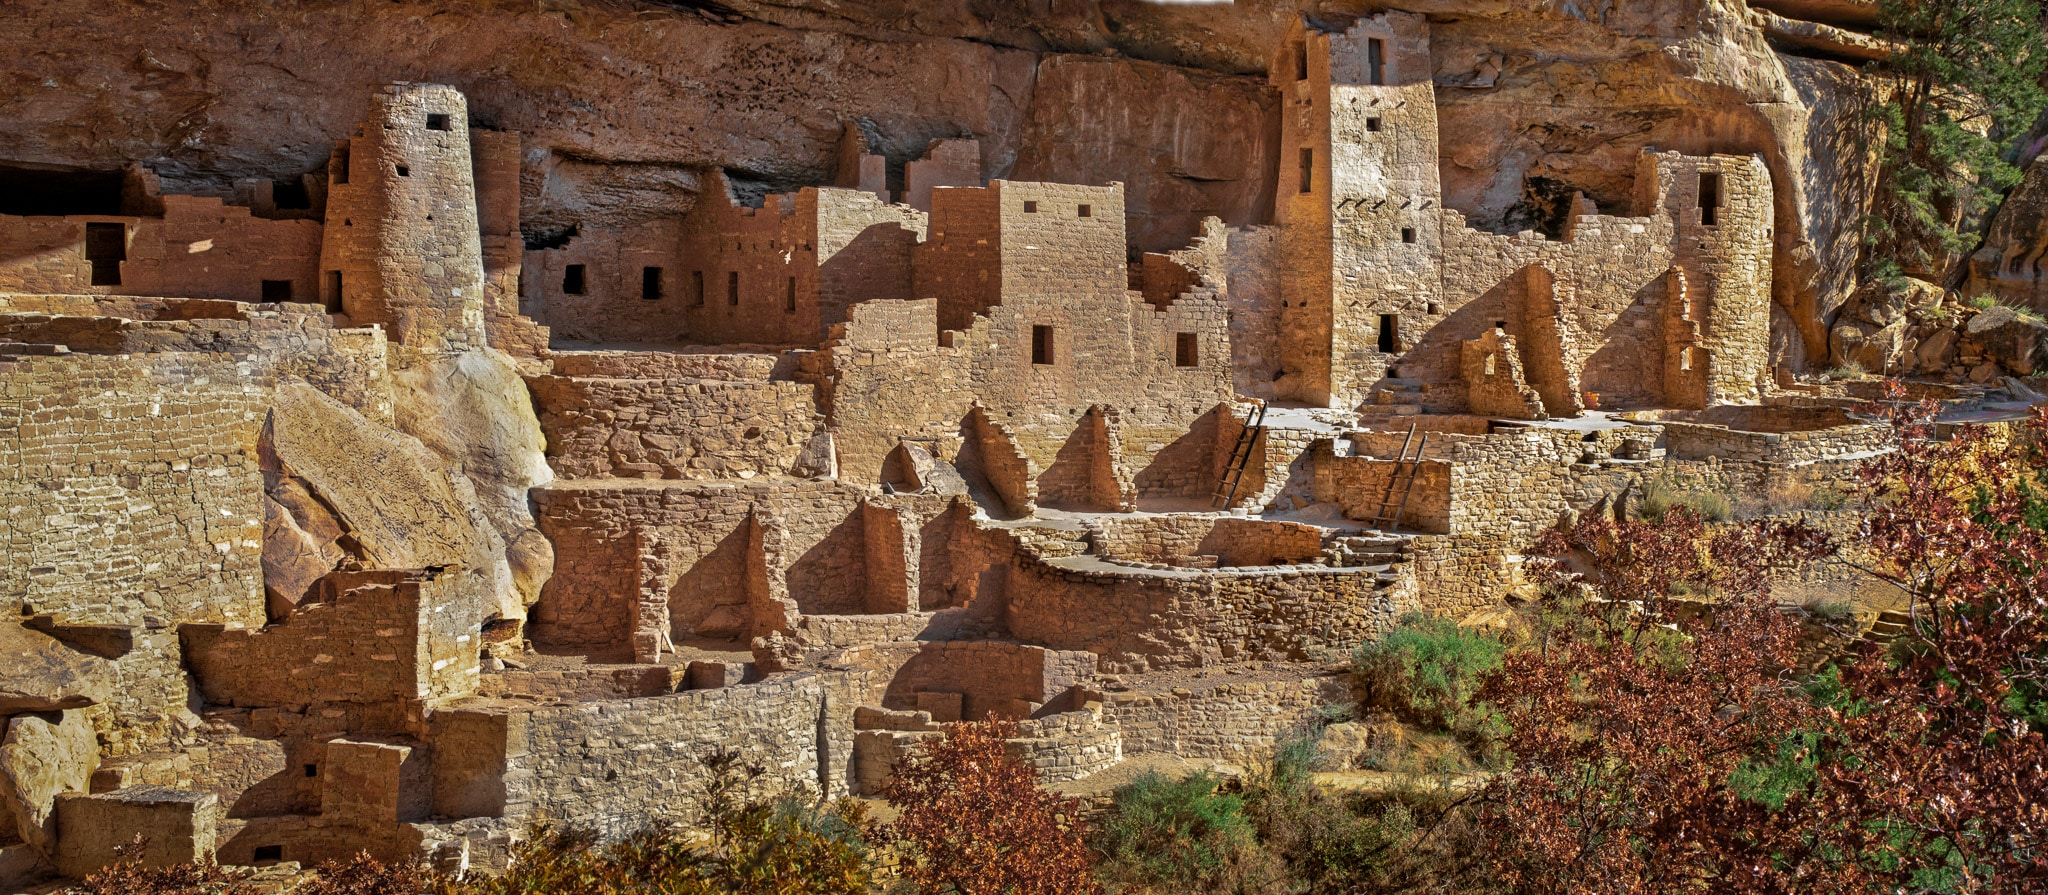 This panoramic view of cliff palace was taken between tour groups. It is the largest cliff dwellingin Mesa Verde National Park near Cortez, Colorado.